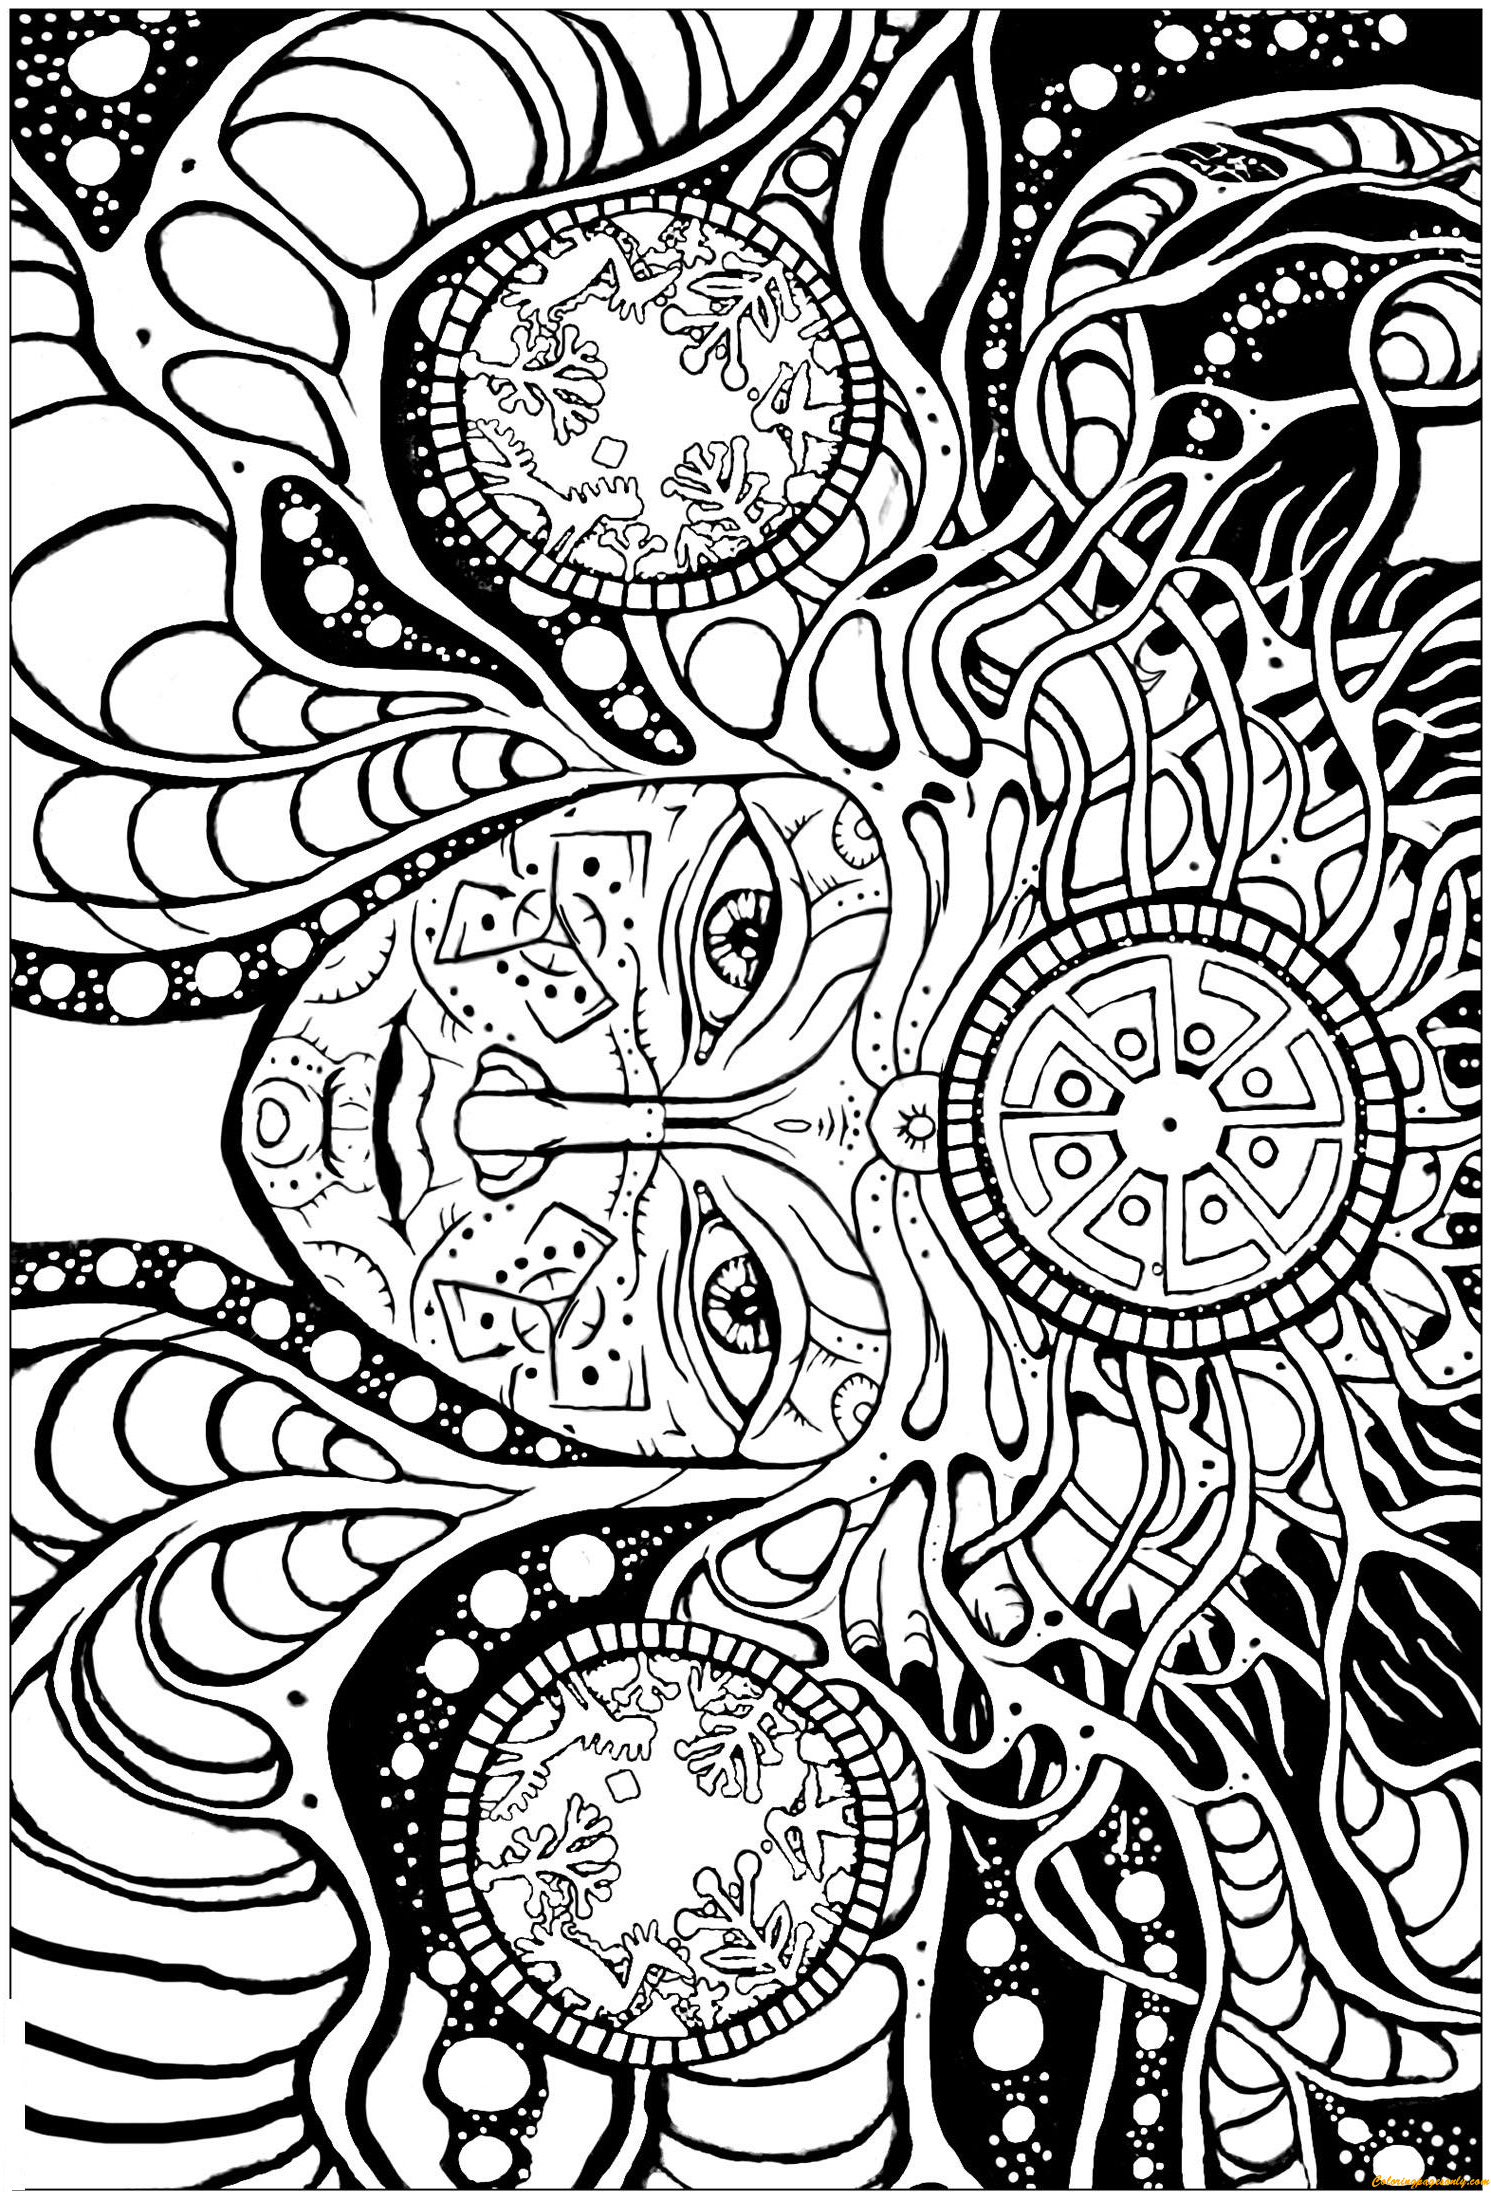 Psychedelic Femme Coloring Page - Free Coloring Pages Online